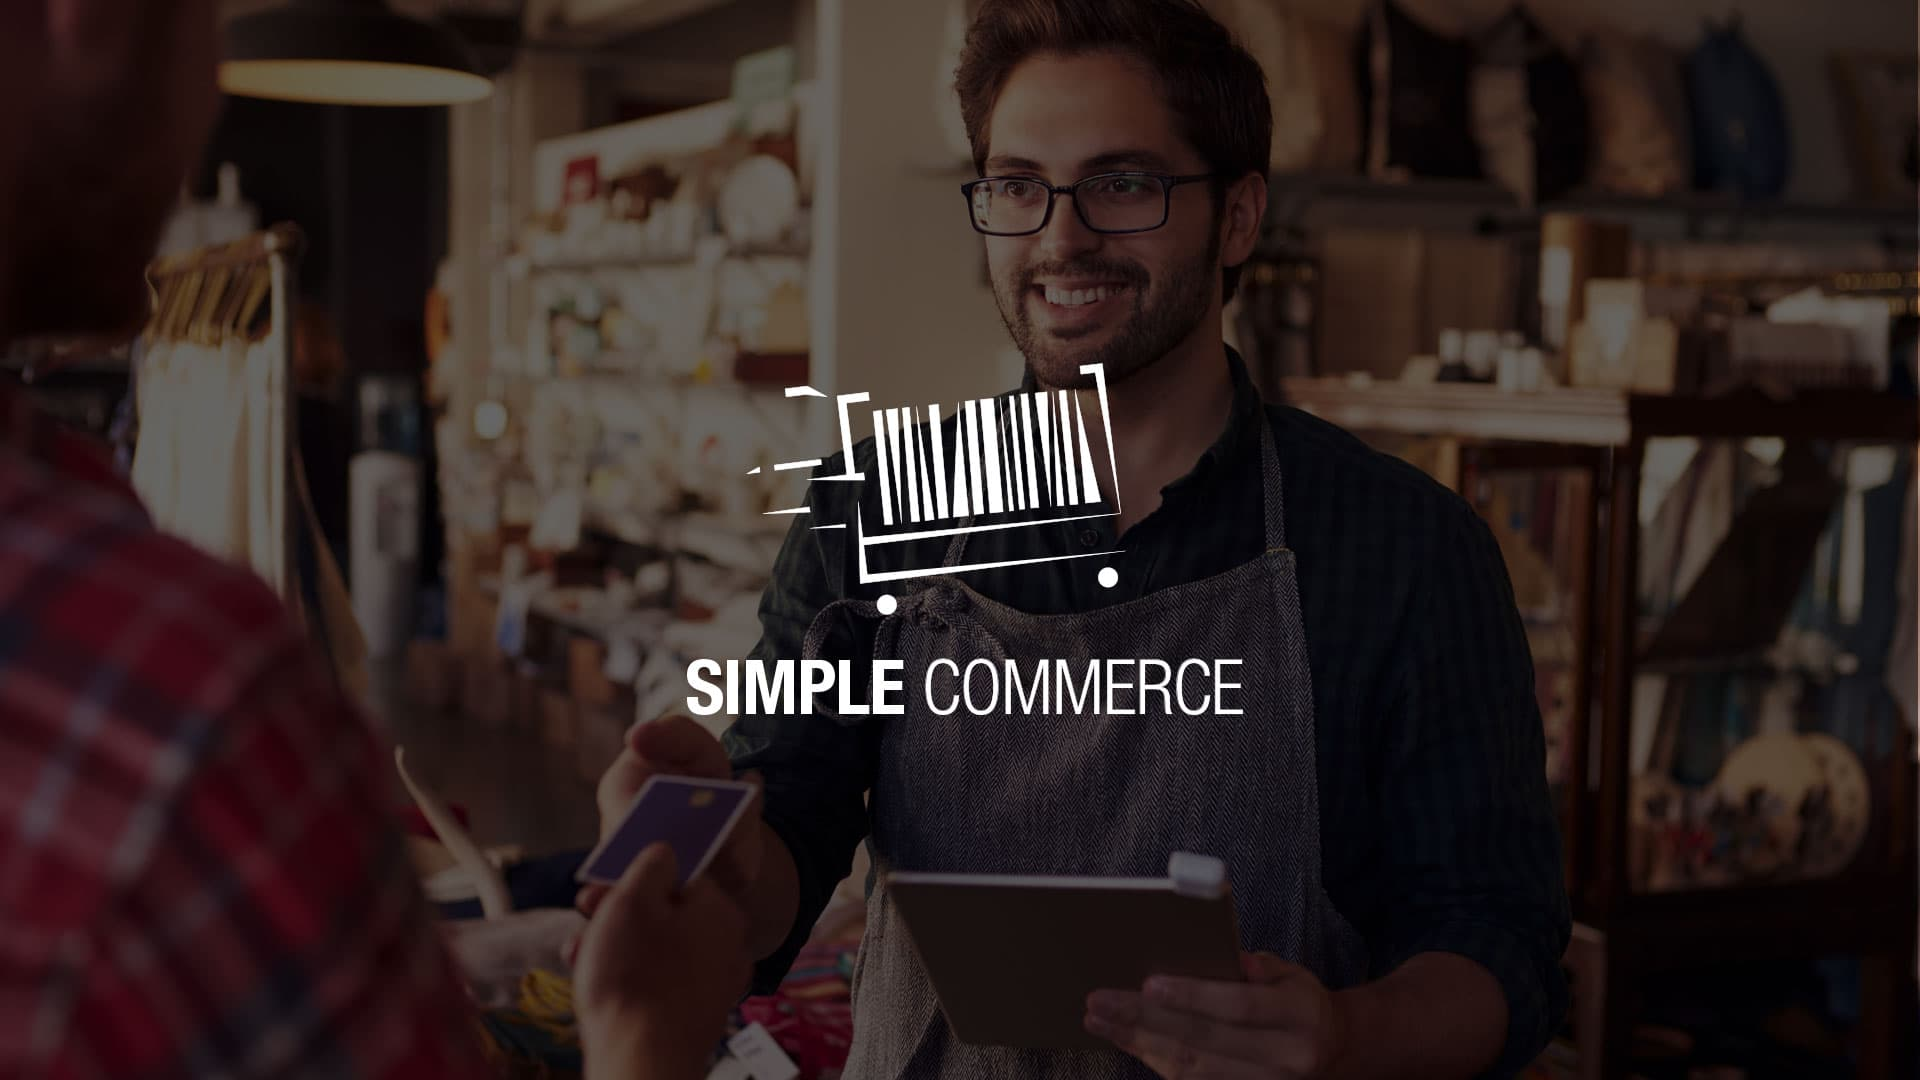 Simple commerce